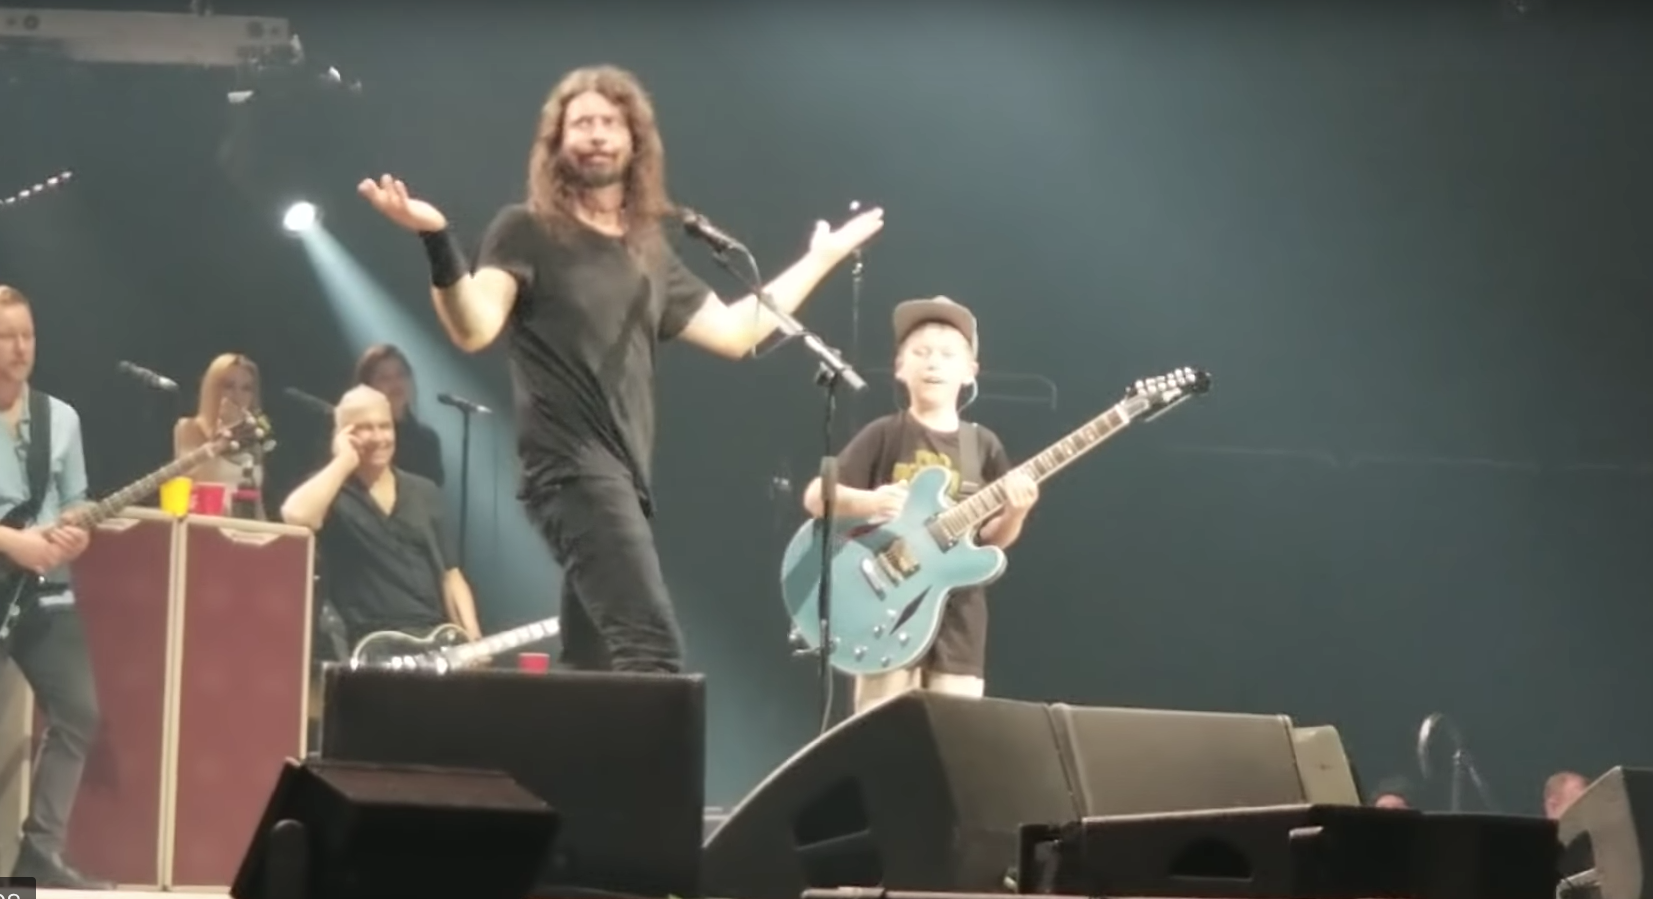 The Foo Fighters invite 10-year-old guitarist on-stage at Kansas City concert